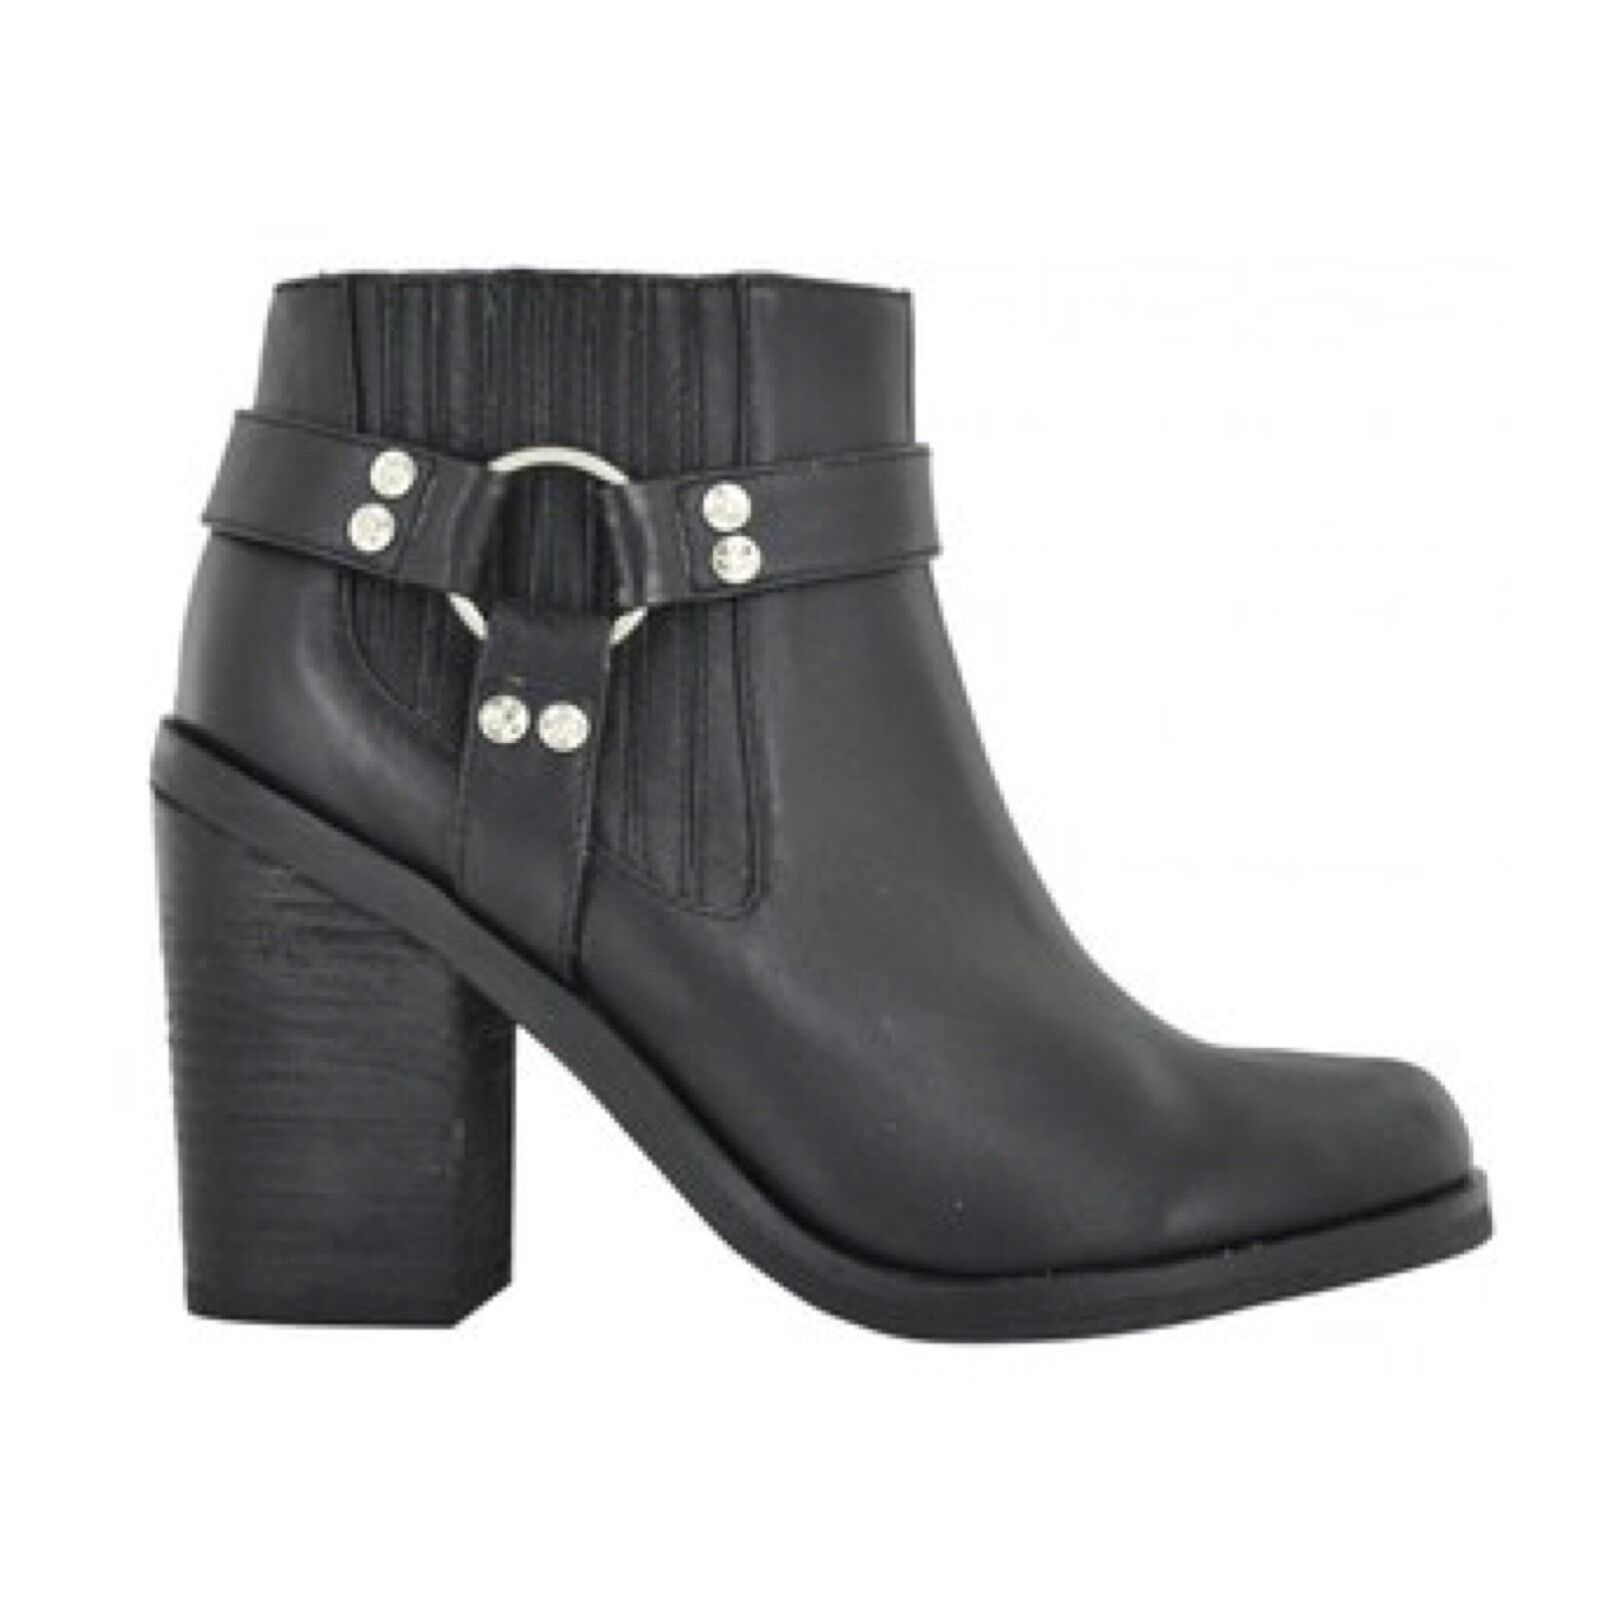 SENSO Black Leather  Jay  Chunky Buckle High Heel Ankle Boot - Size 6 39